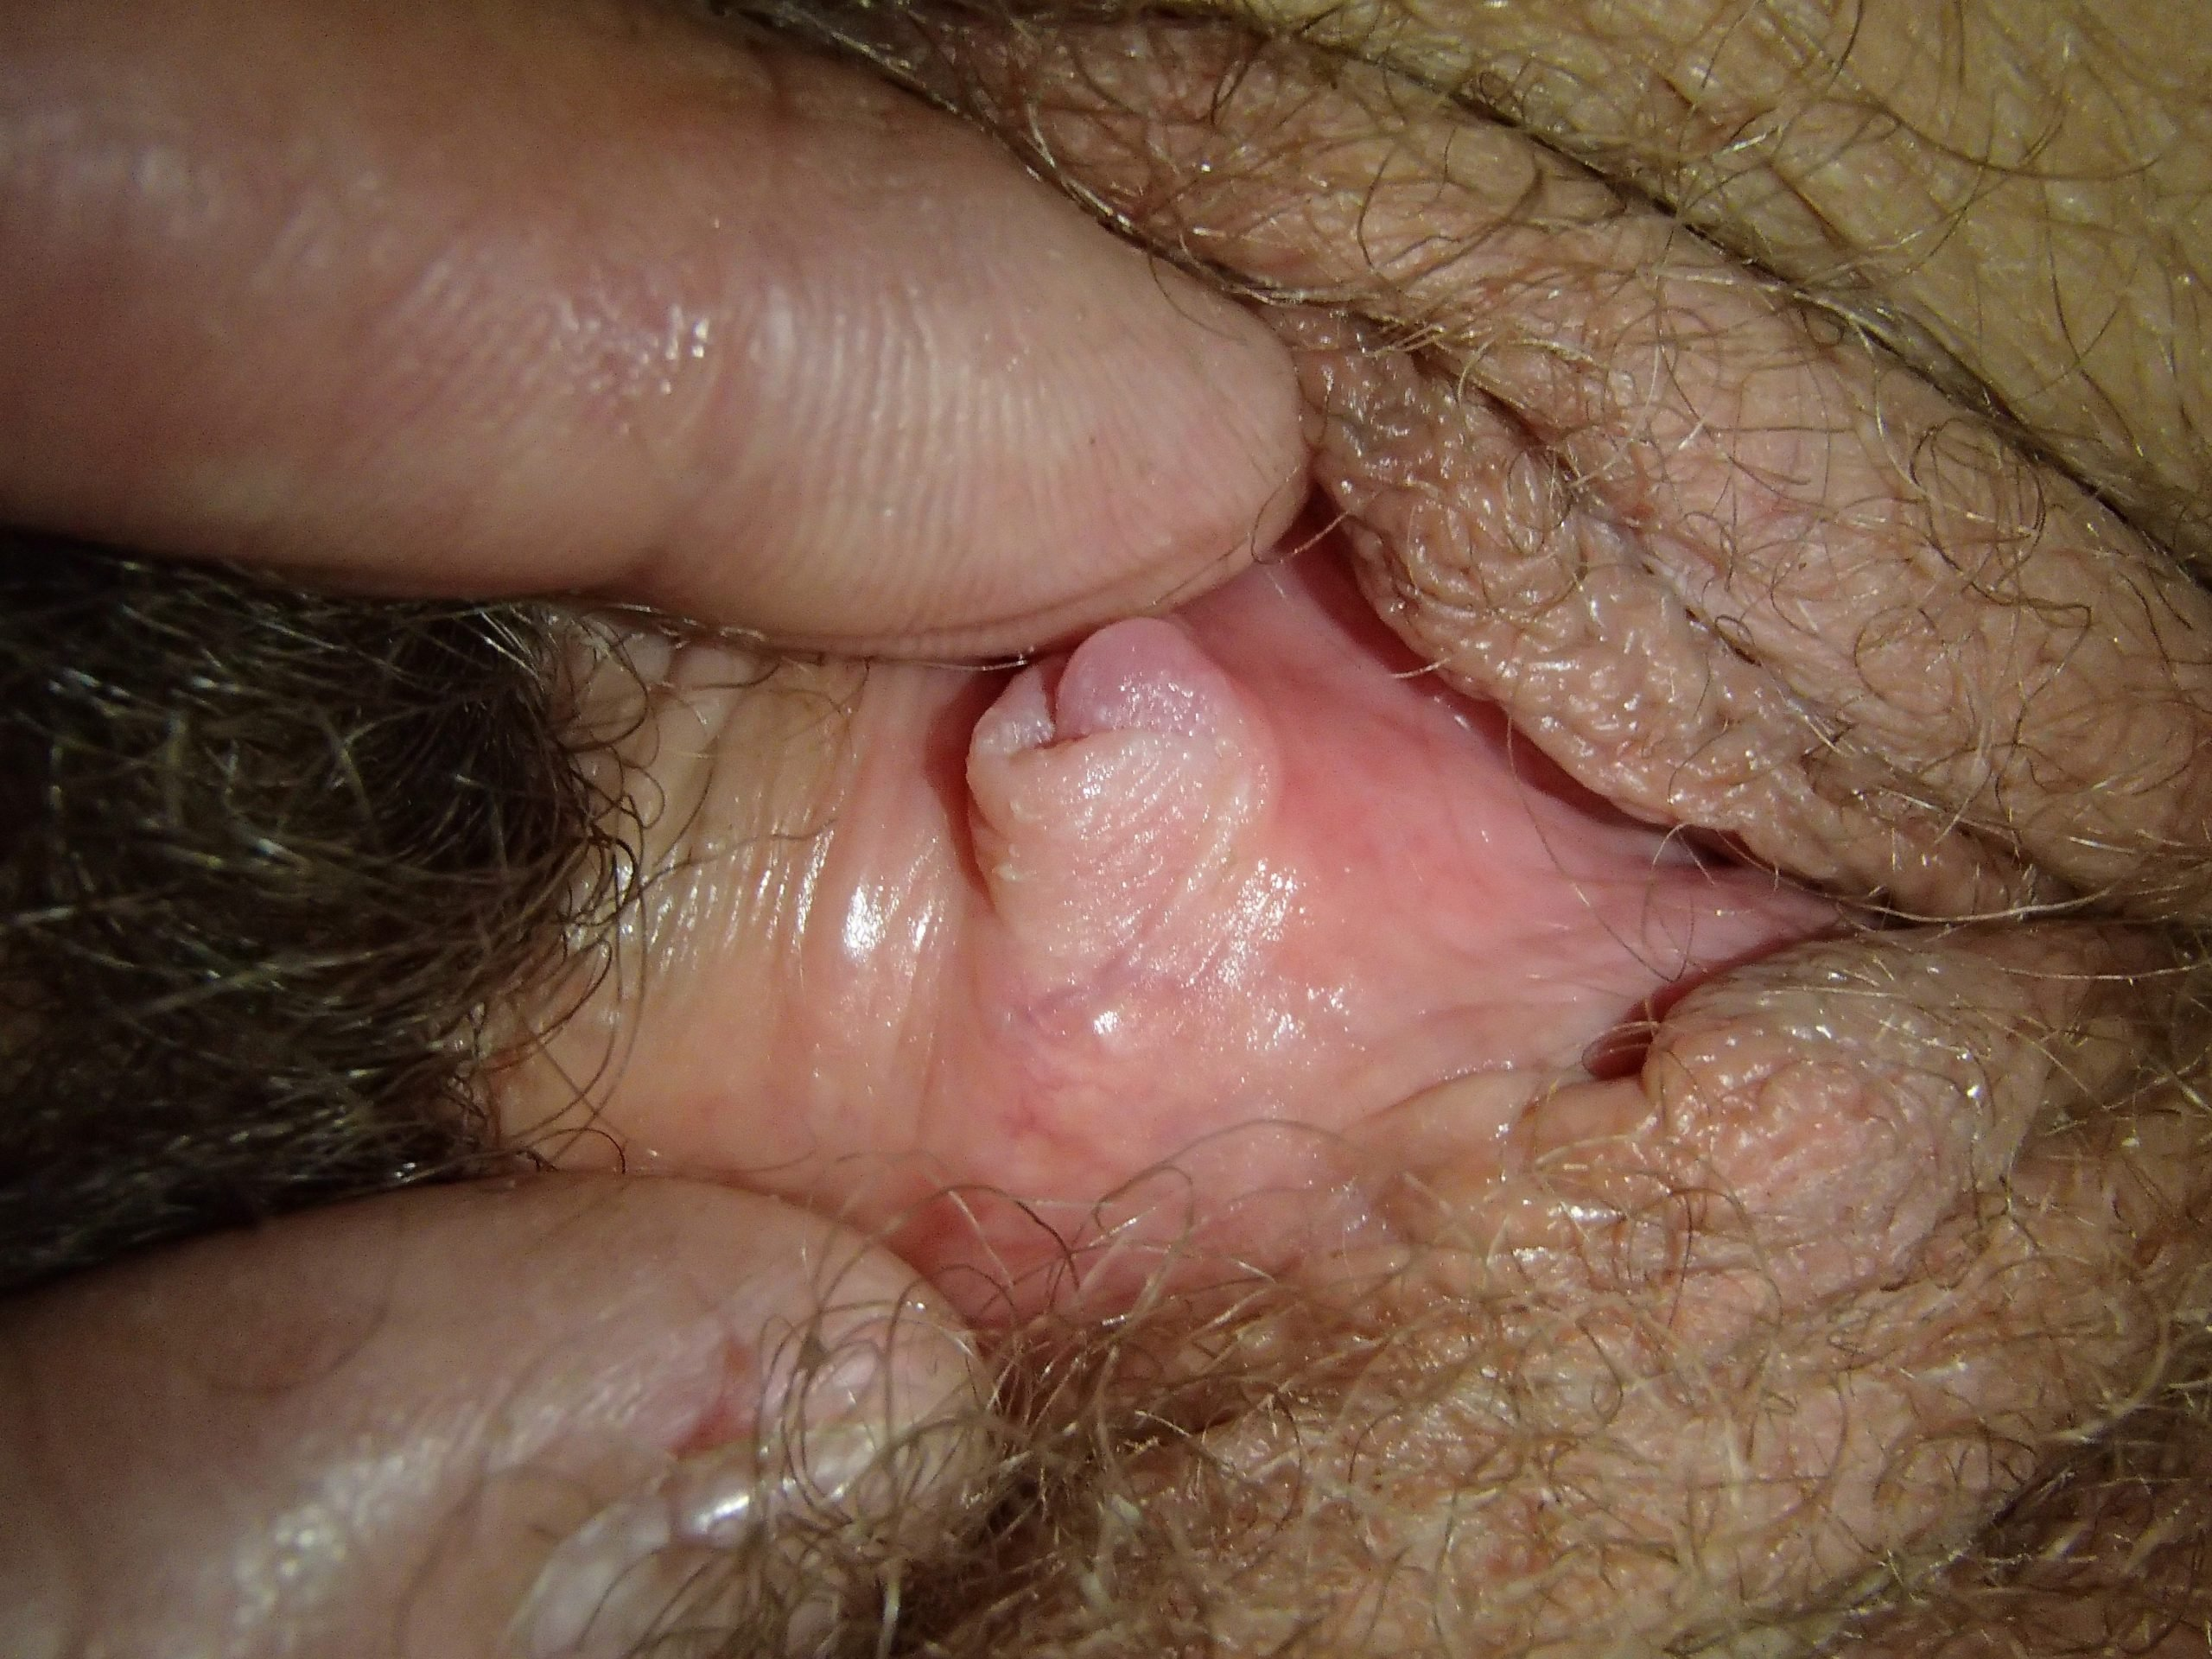 Pic and clit clitoris @